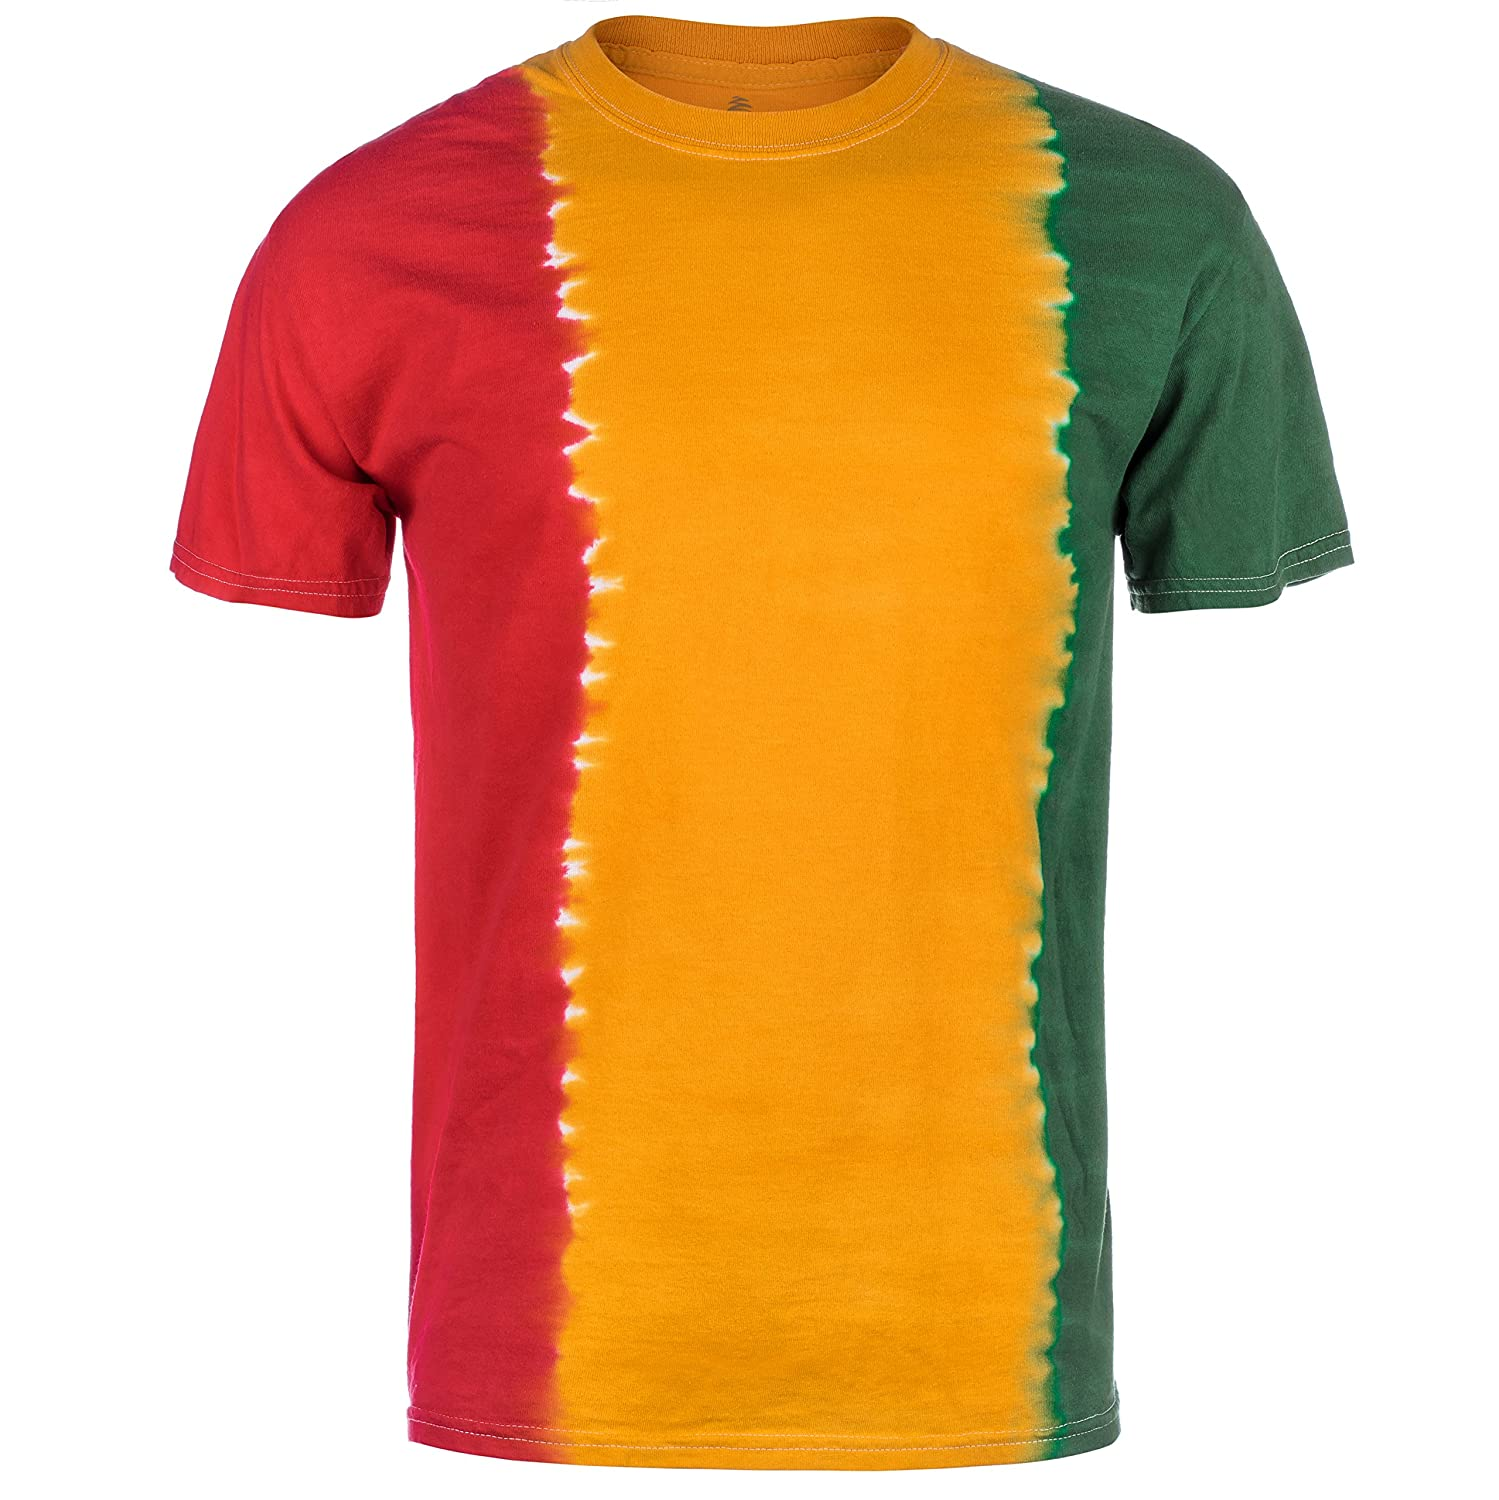 ba48581b4b2527 How To Tie Dye A White Shirt With Food Colouring – EDGE Engineering ...